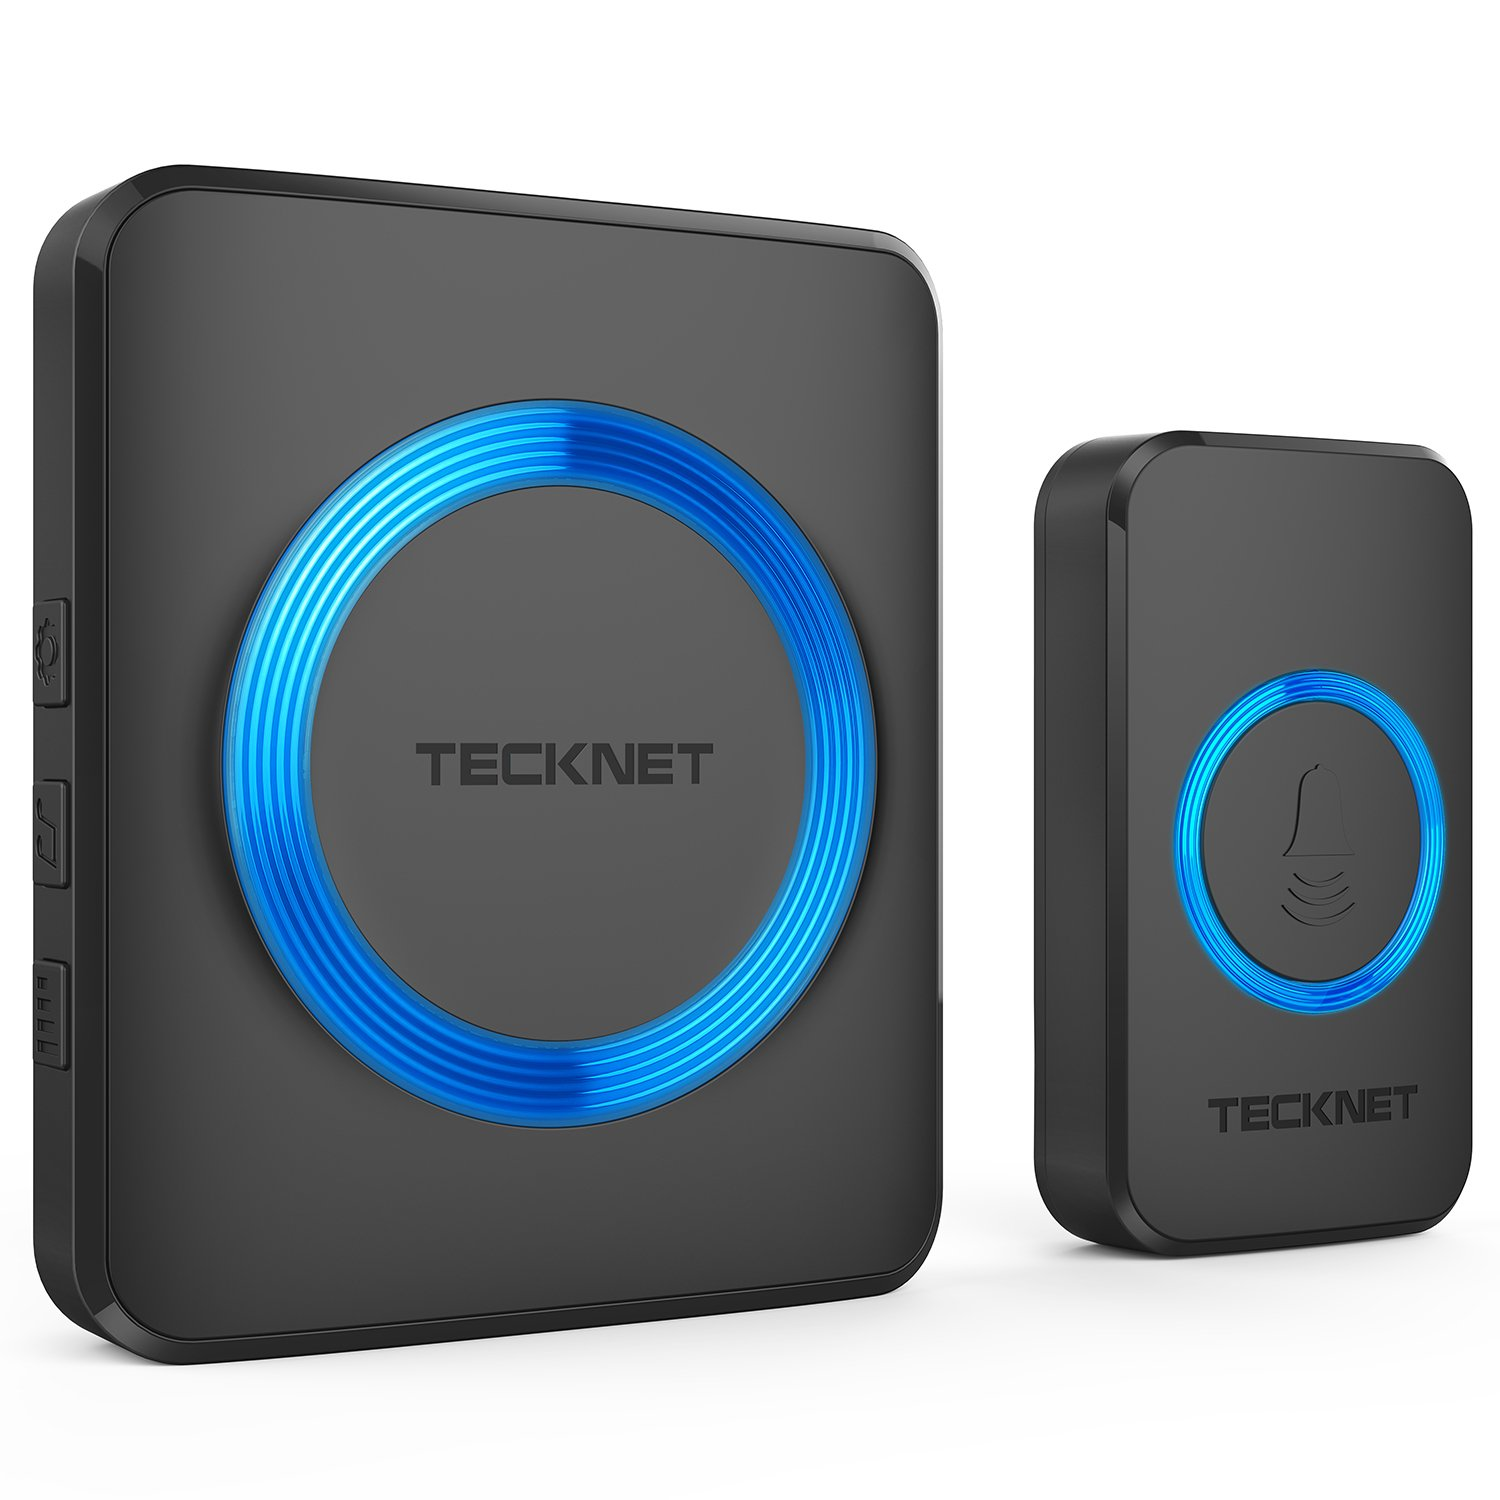 Wireless Doorbell, TeckNet Plug-in Cordless Door Chime Kit With 1000ft Range, 52 Chimes, 4 Level Volume, No Batteries Required for Receiver (Black)